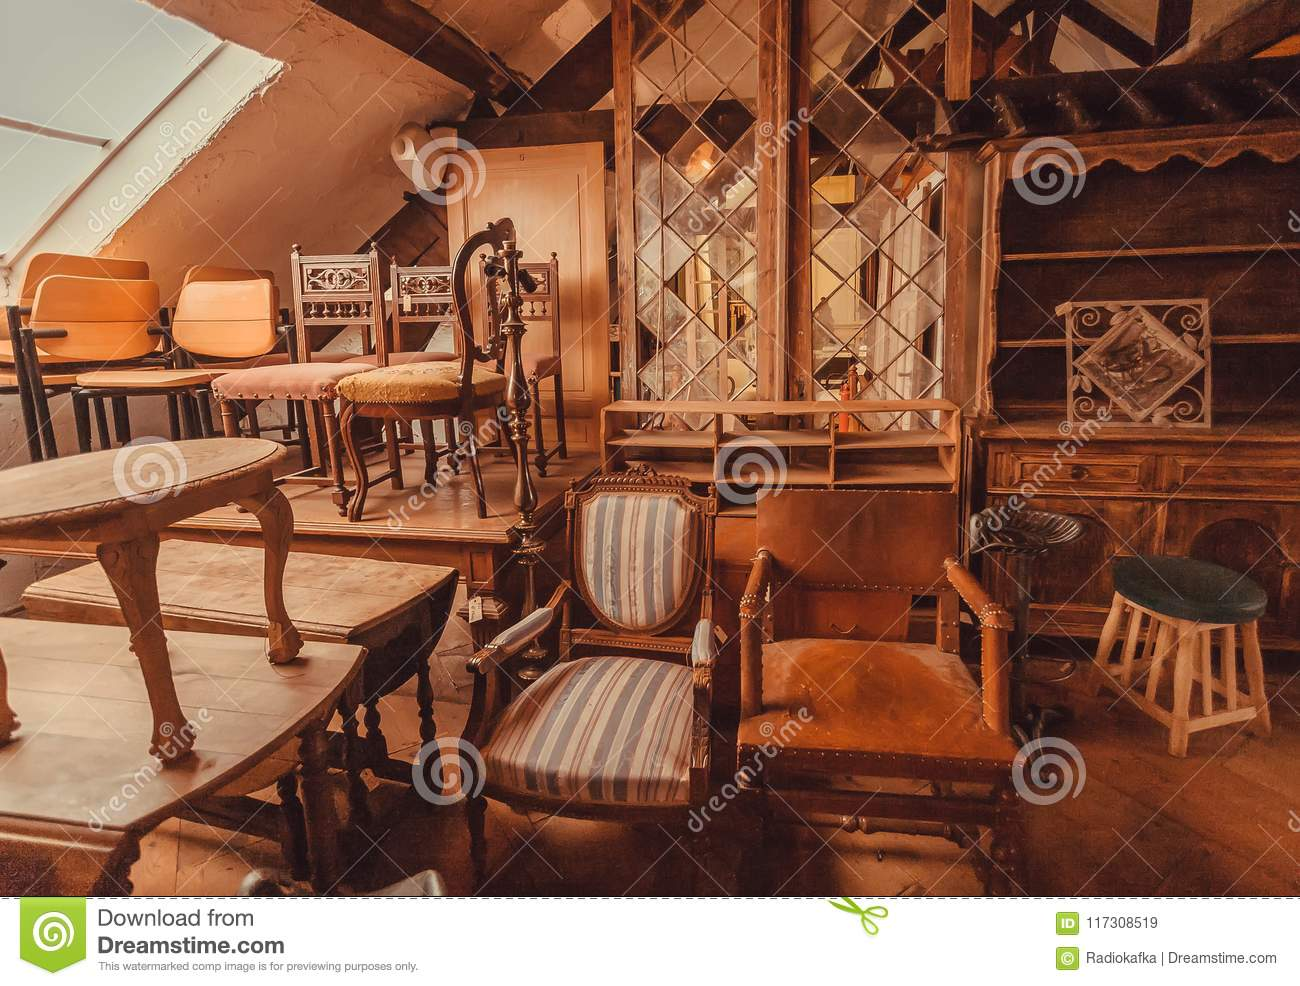 Old Shelves And Wooden Furniture In Historical House With